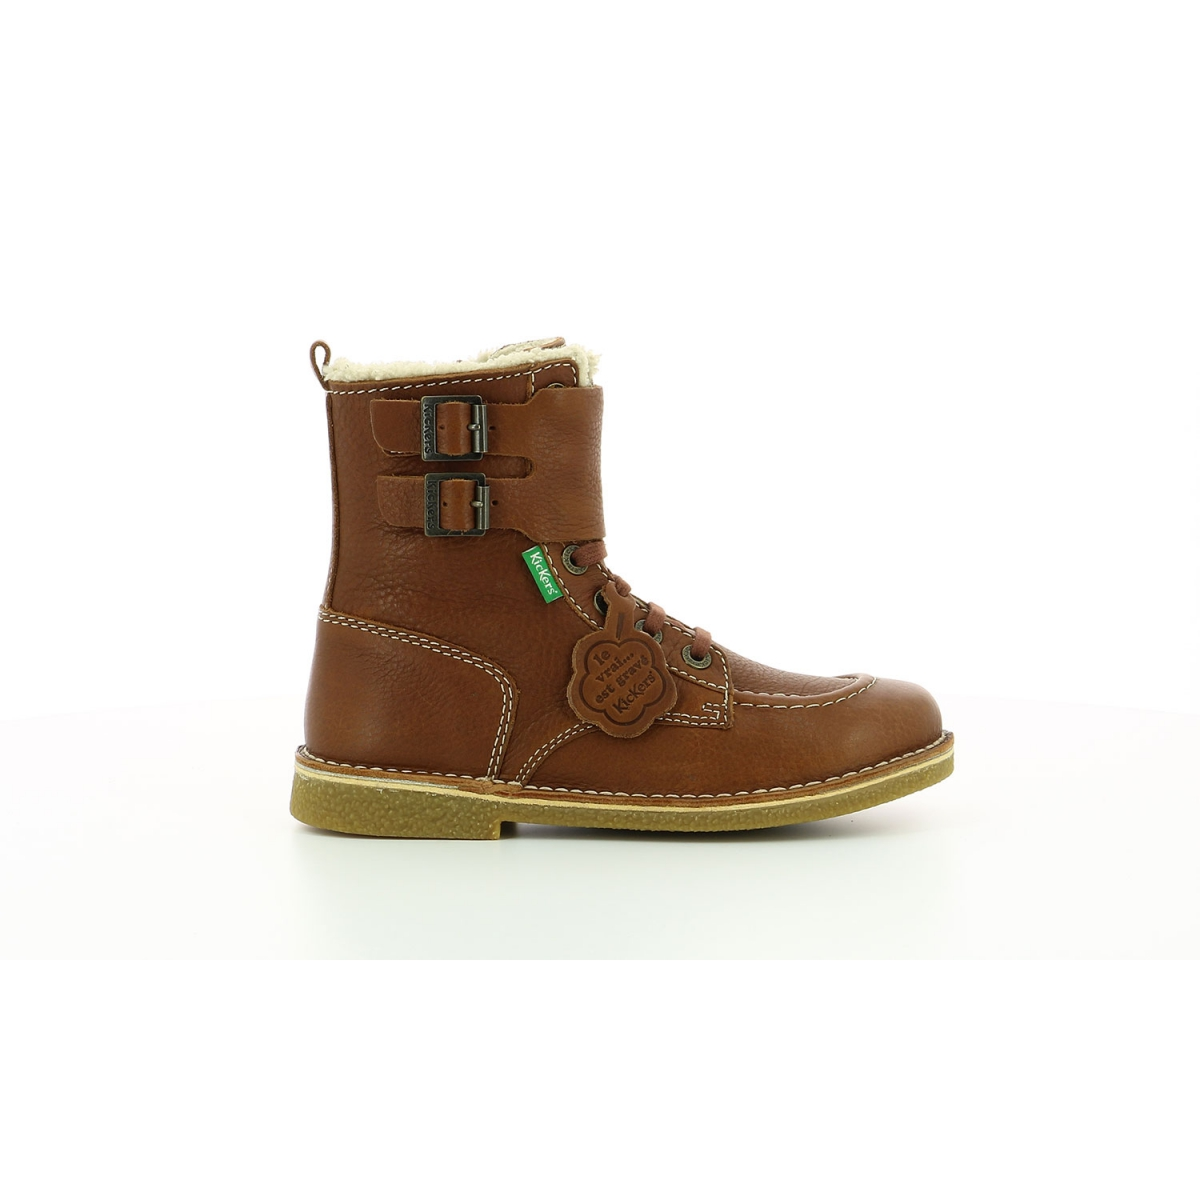 Boots Femme Meenely camel Chaussures Femme Kickers